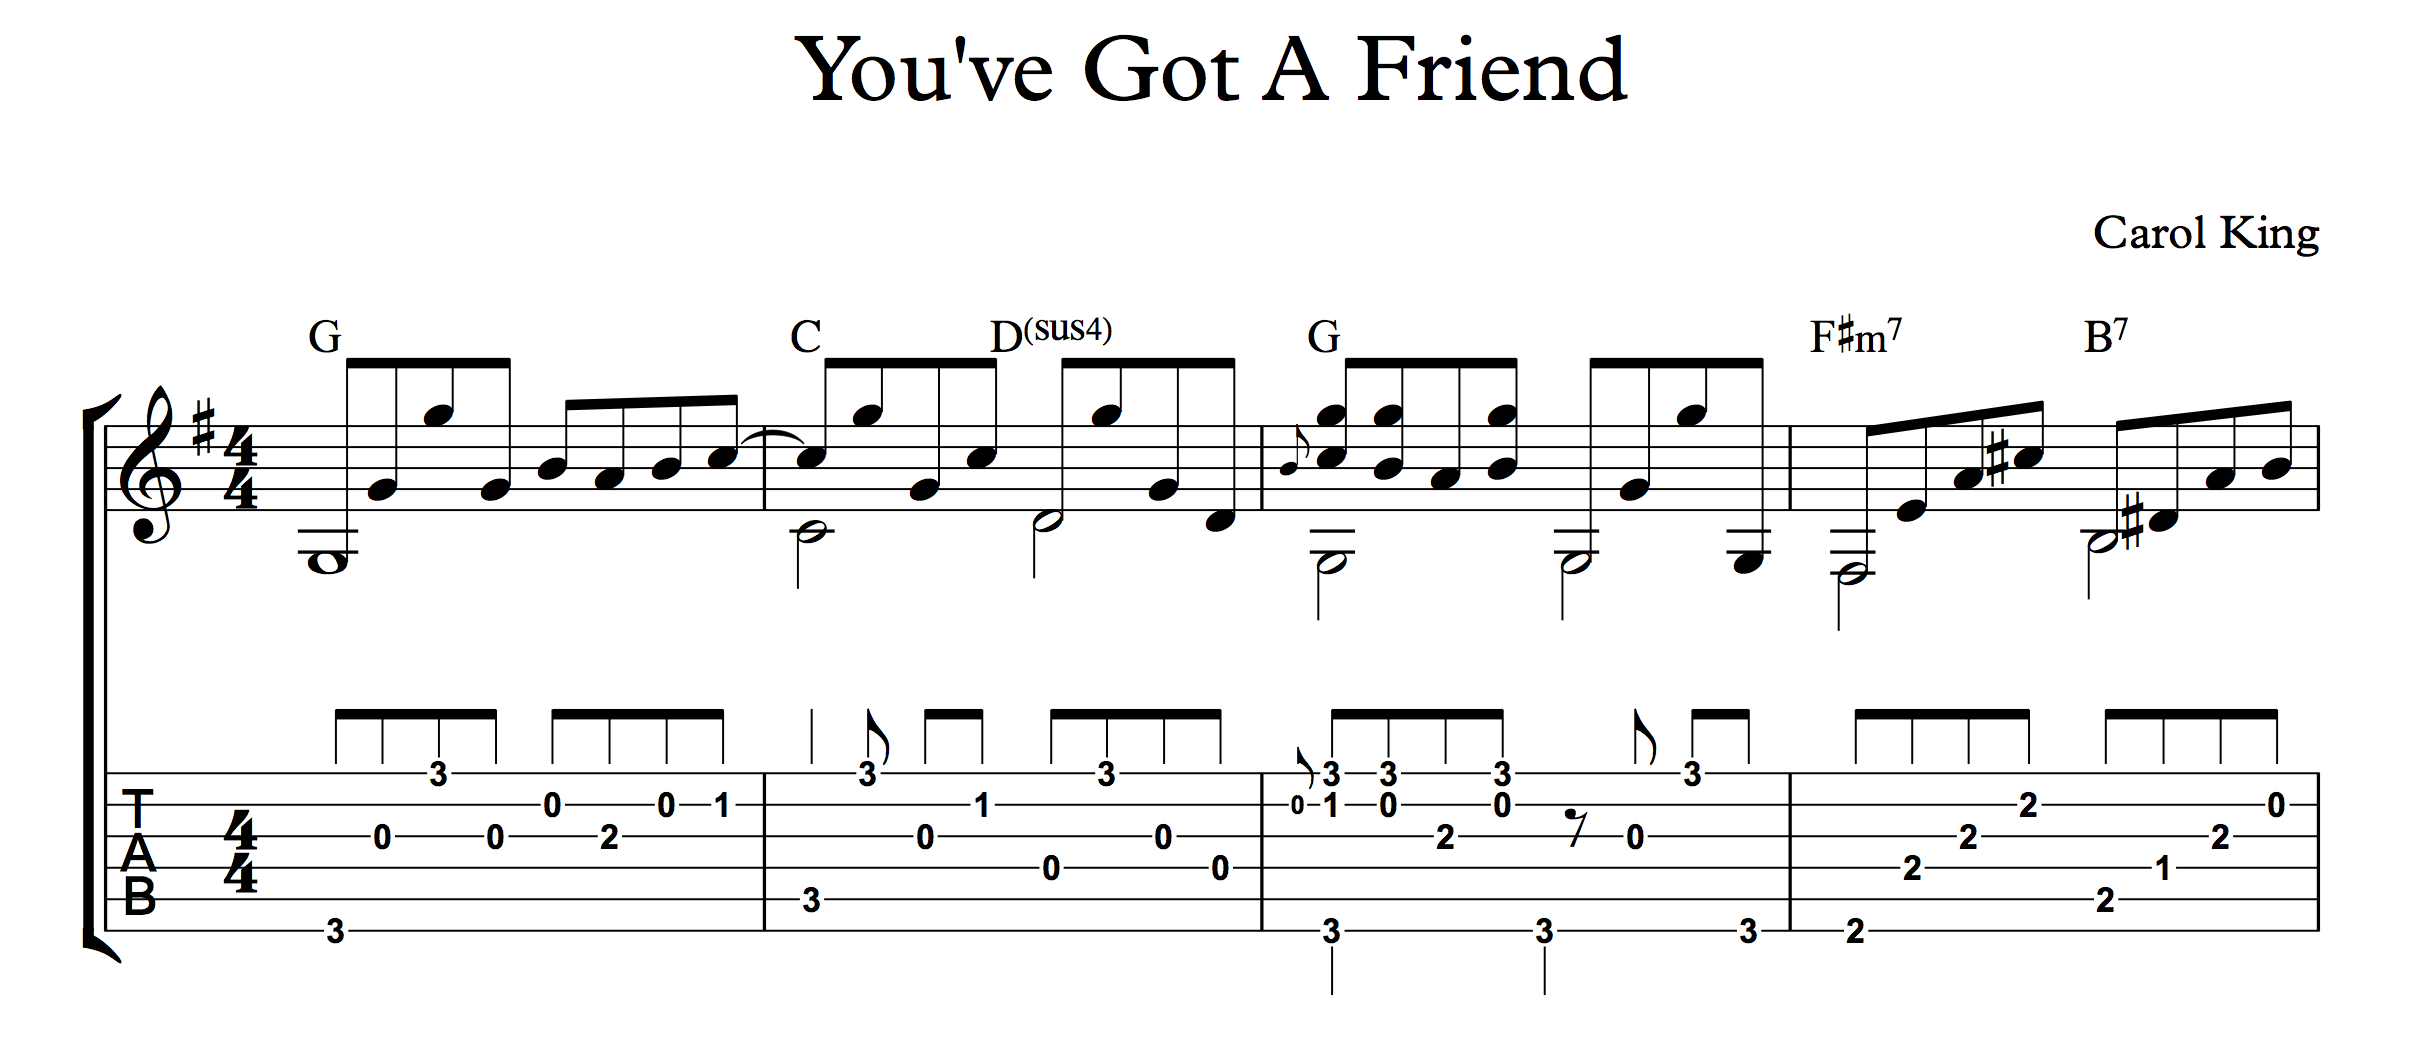 Youve got a friend guitar chords and words youve got a friend for fingerstyle guitar hexwebz Image collections